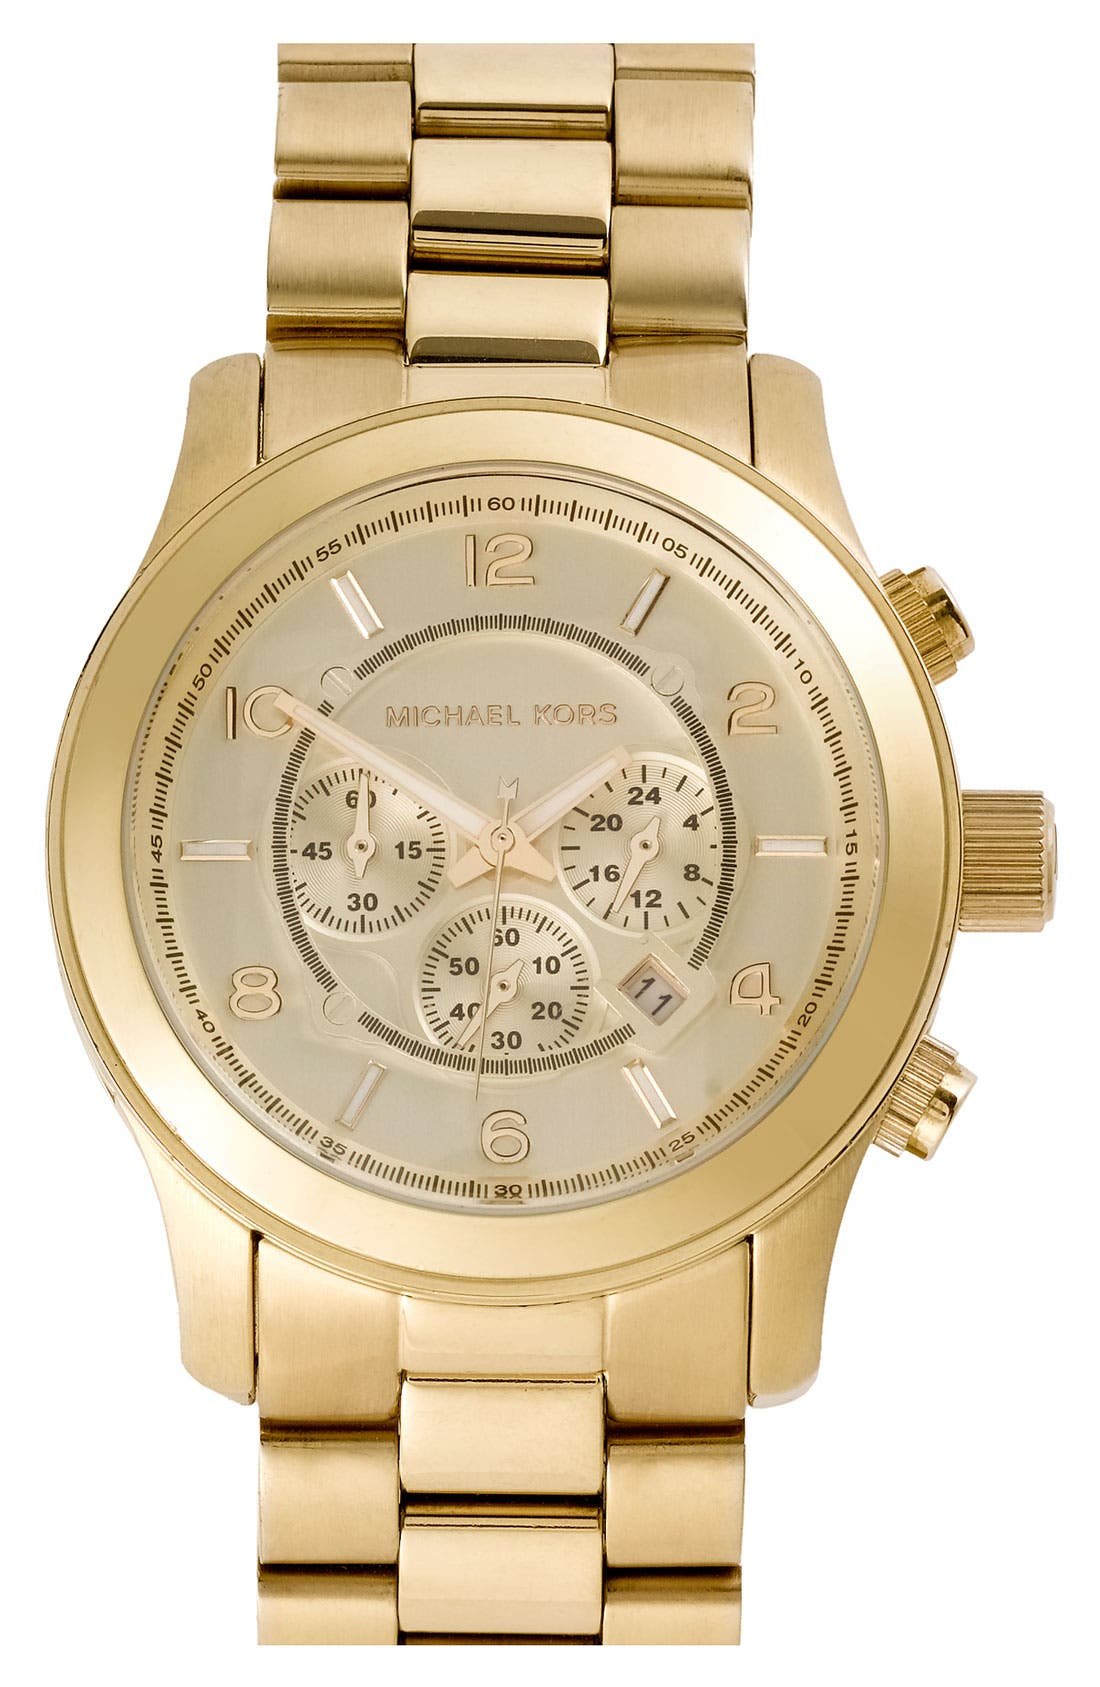 MICHAEL KORS, 'Large Runway' Chronograph Bracelet Watch, 45mm, Main thumbnail 1, color, GOLD